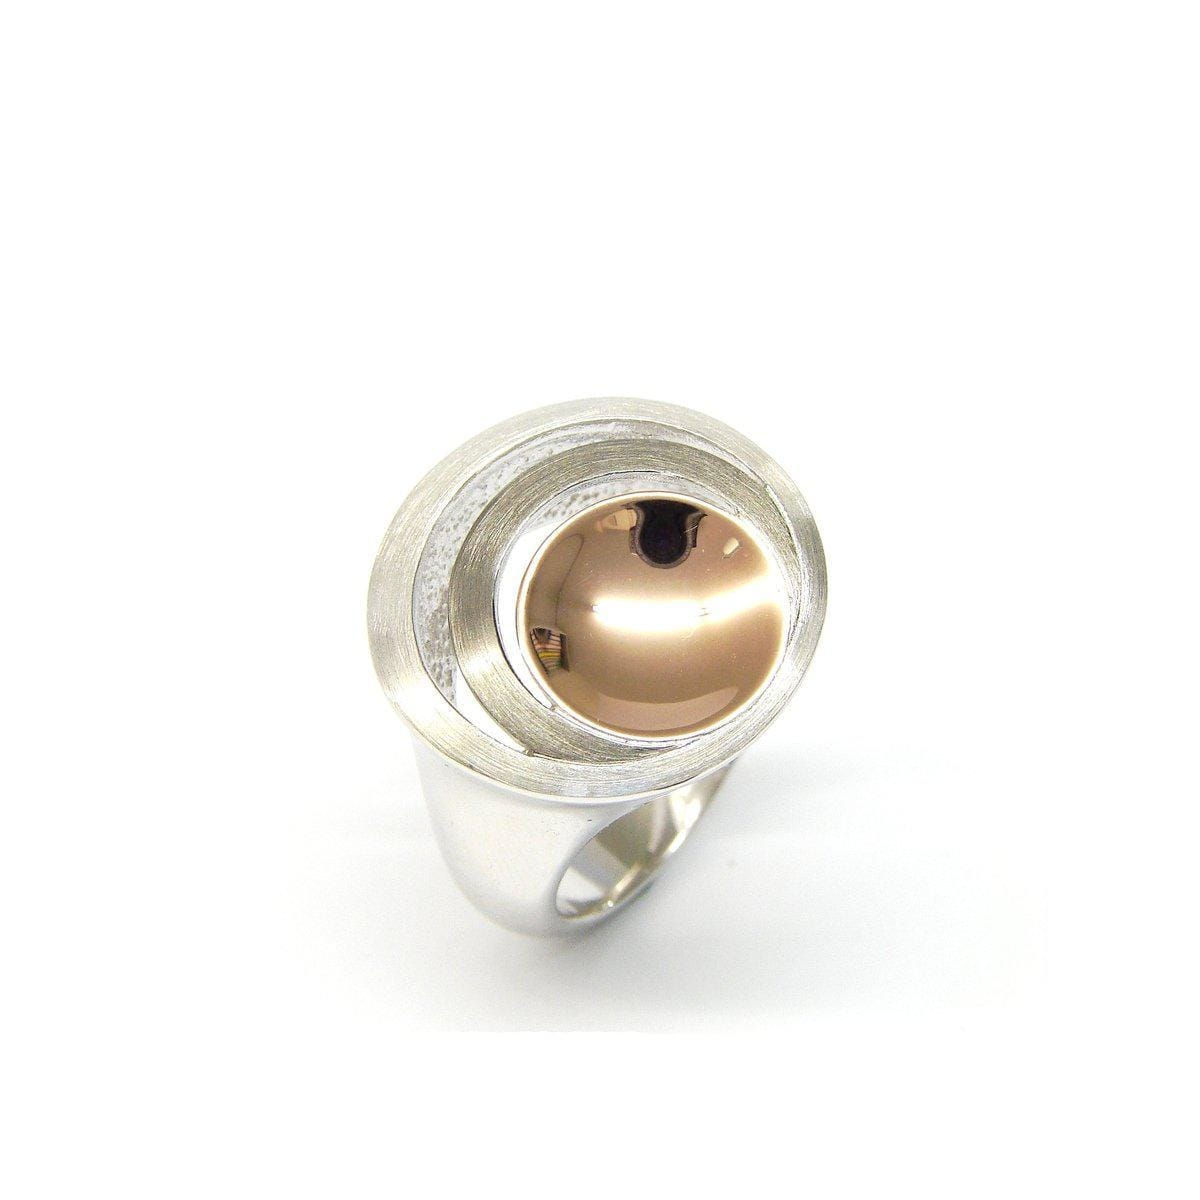 Rose Gold Plated Sterling Silver Ring - 44/84825